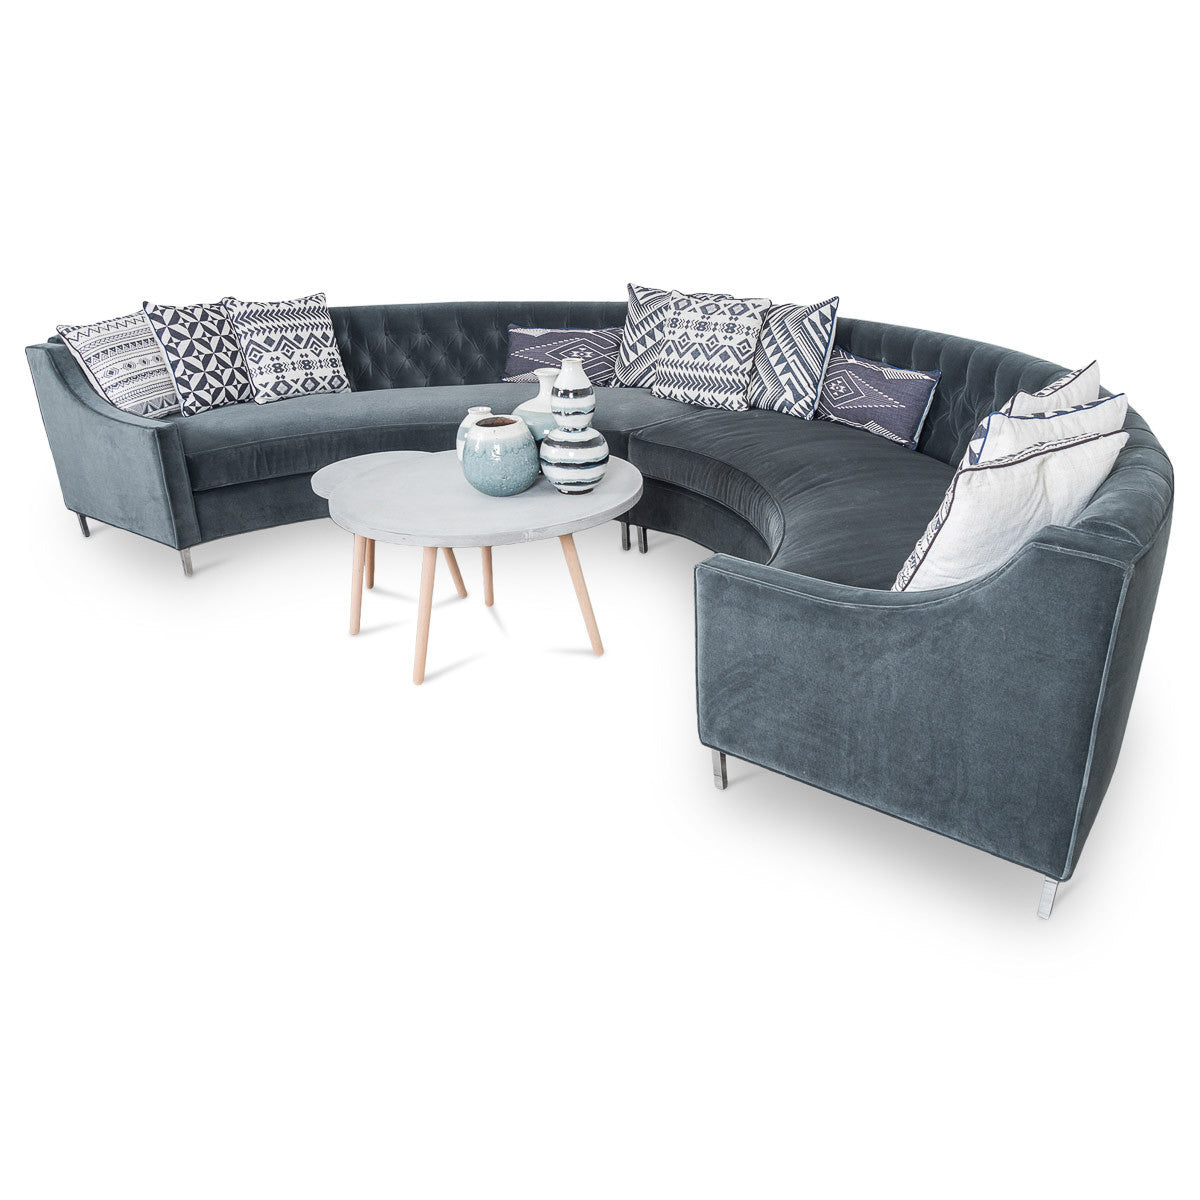 Circle Sectional in Velvet - ModShop1.com